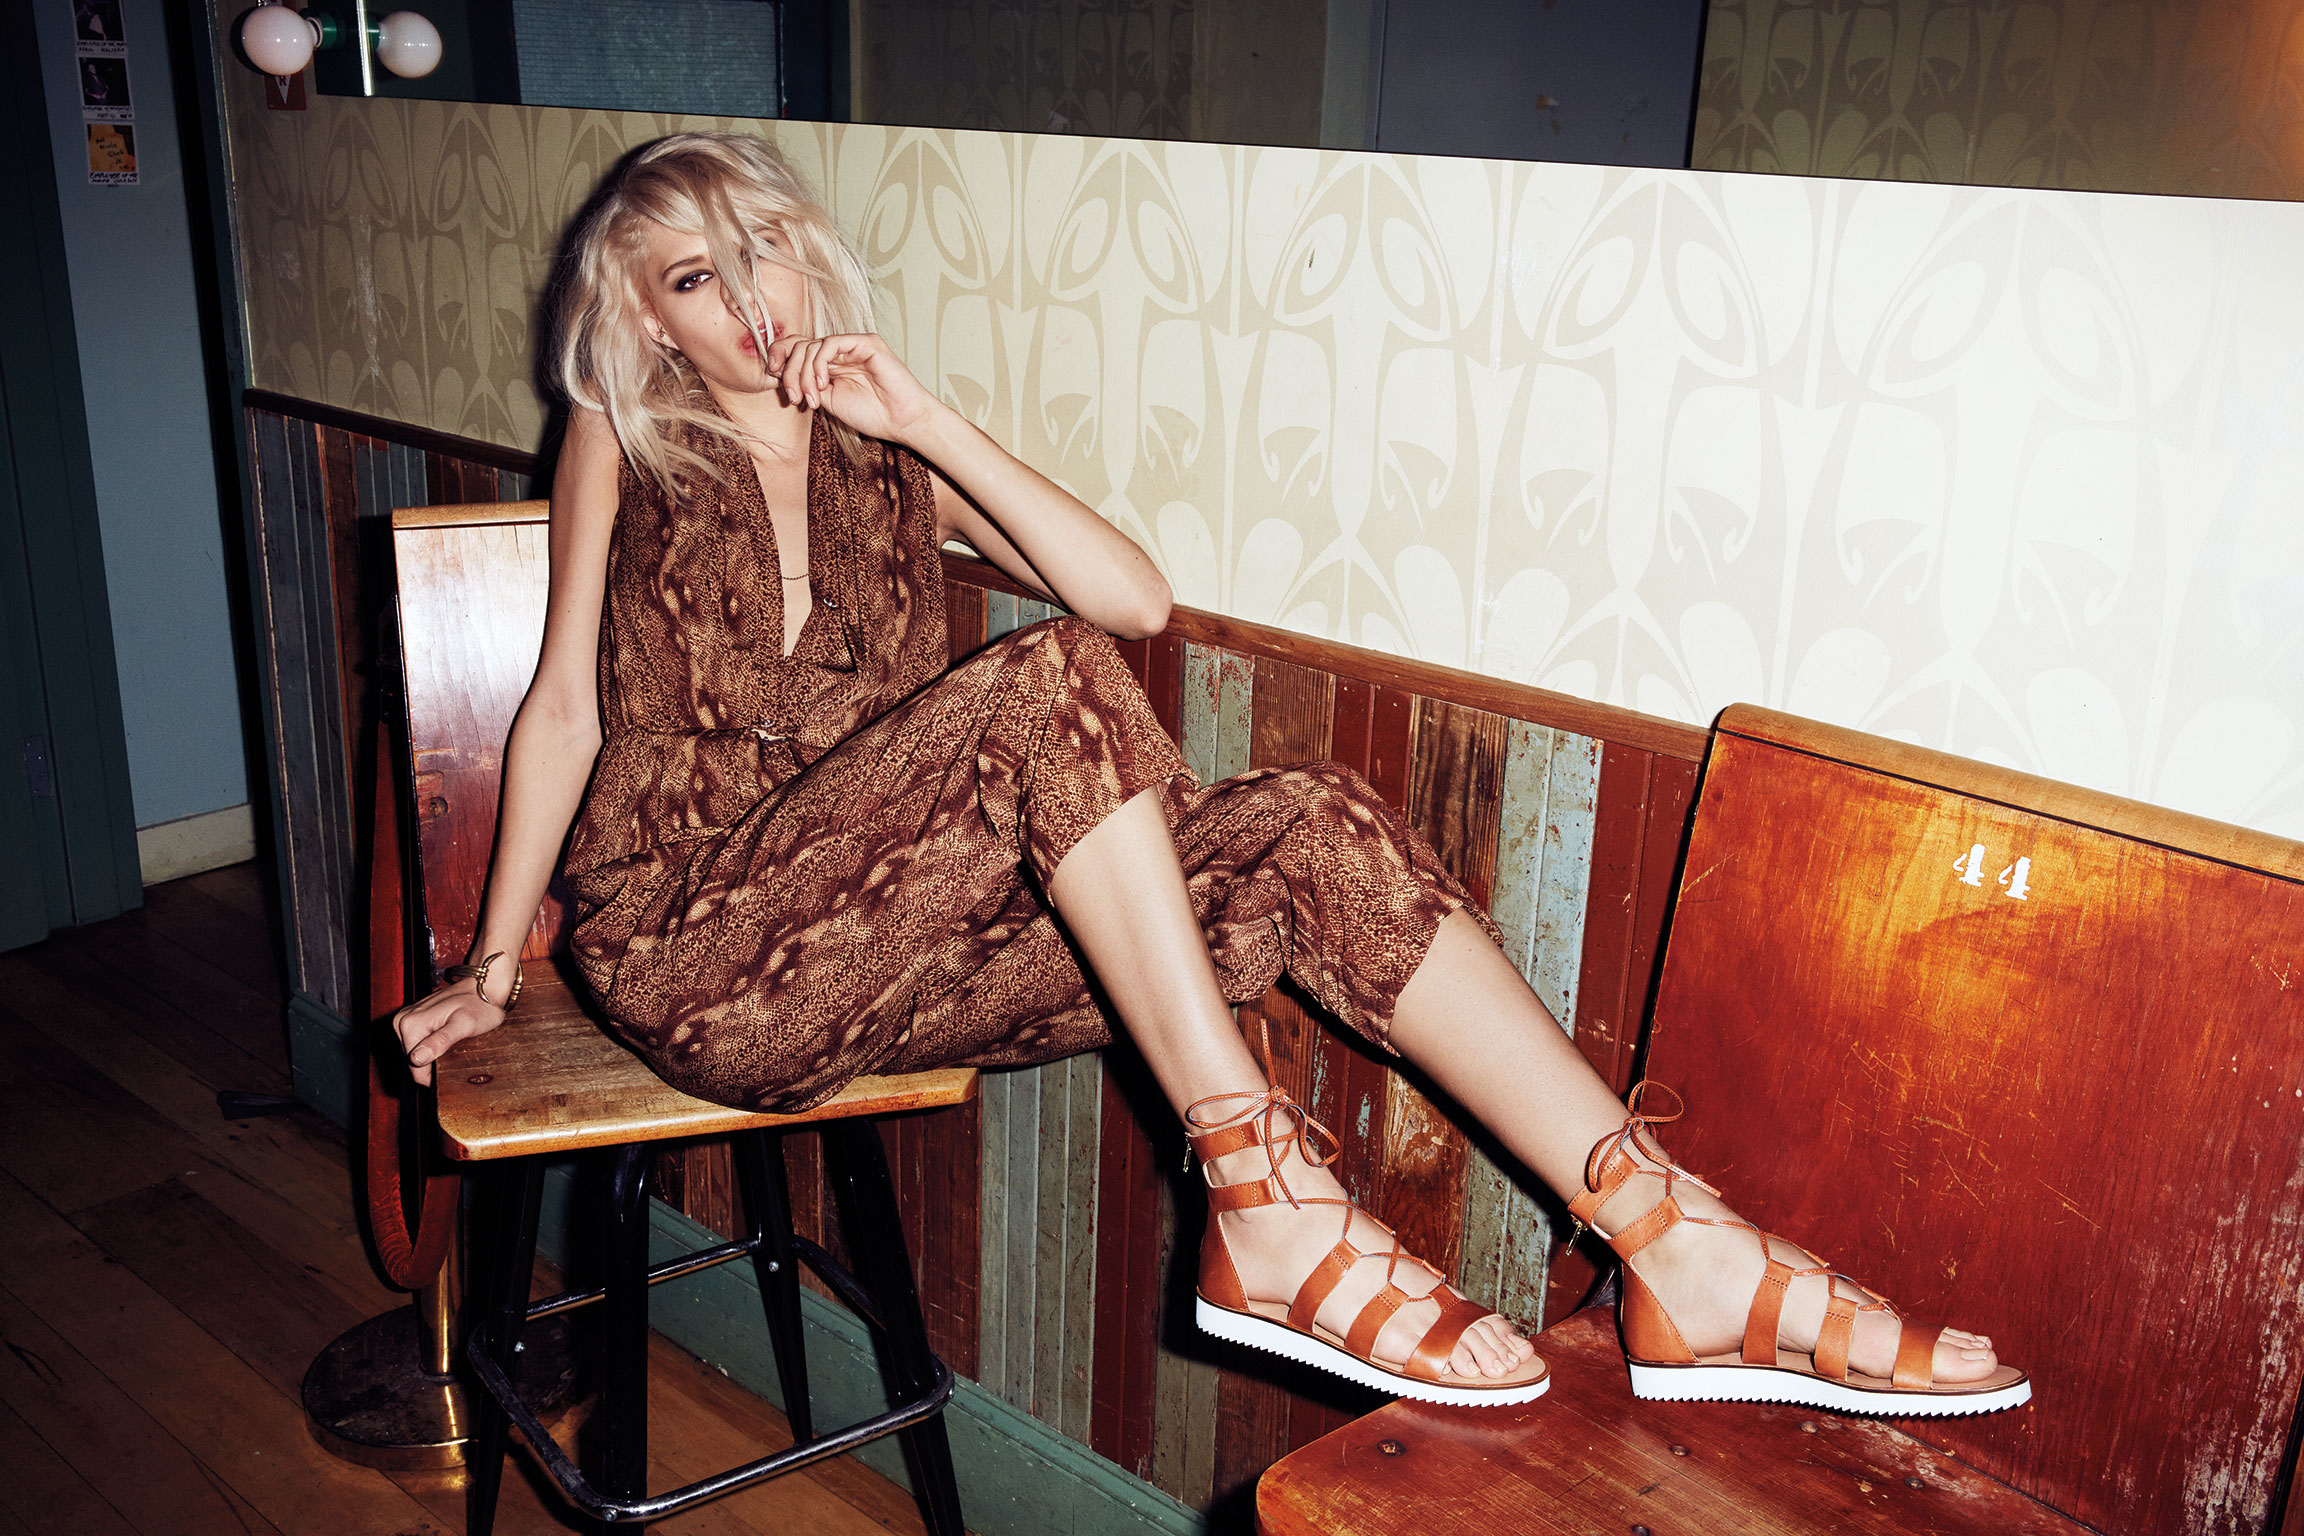 STEVE-MADDEN-SS15-CAMPAIGN-STYLED-BY-ANDREA-MESSIER-CUOMO-7.jpg